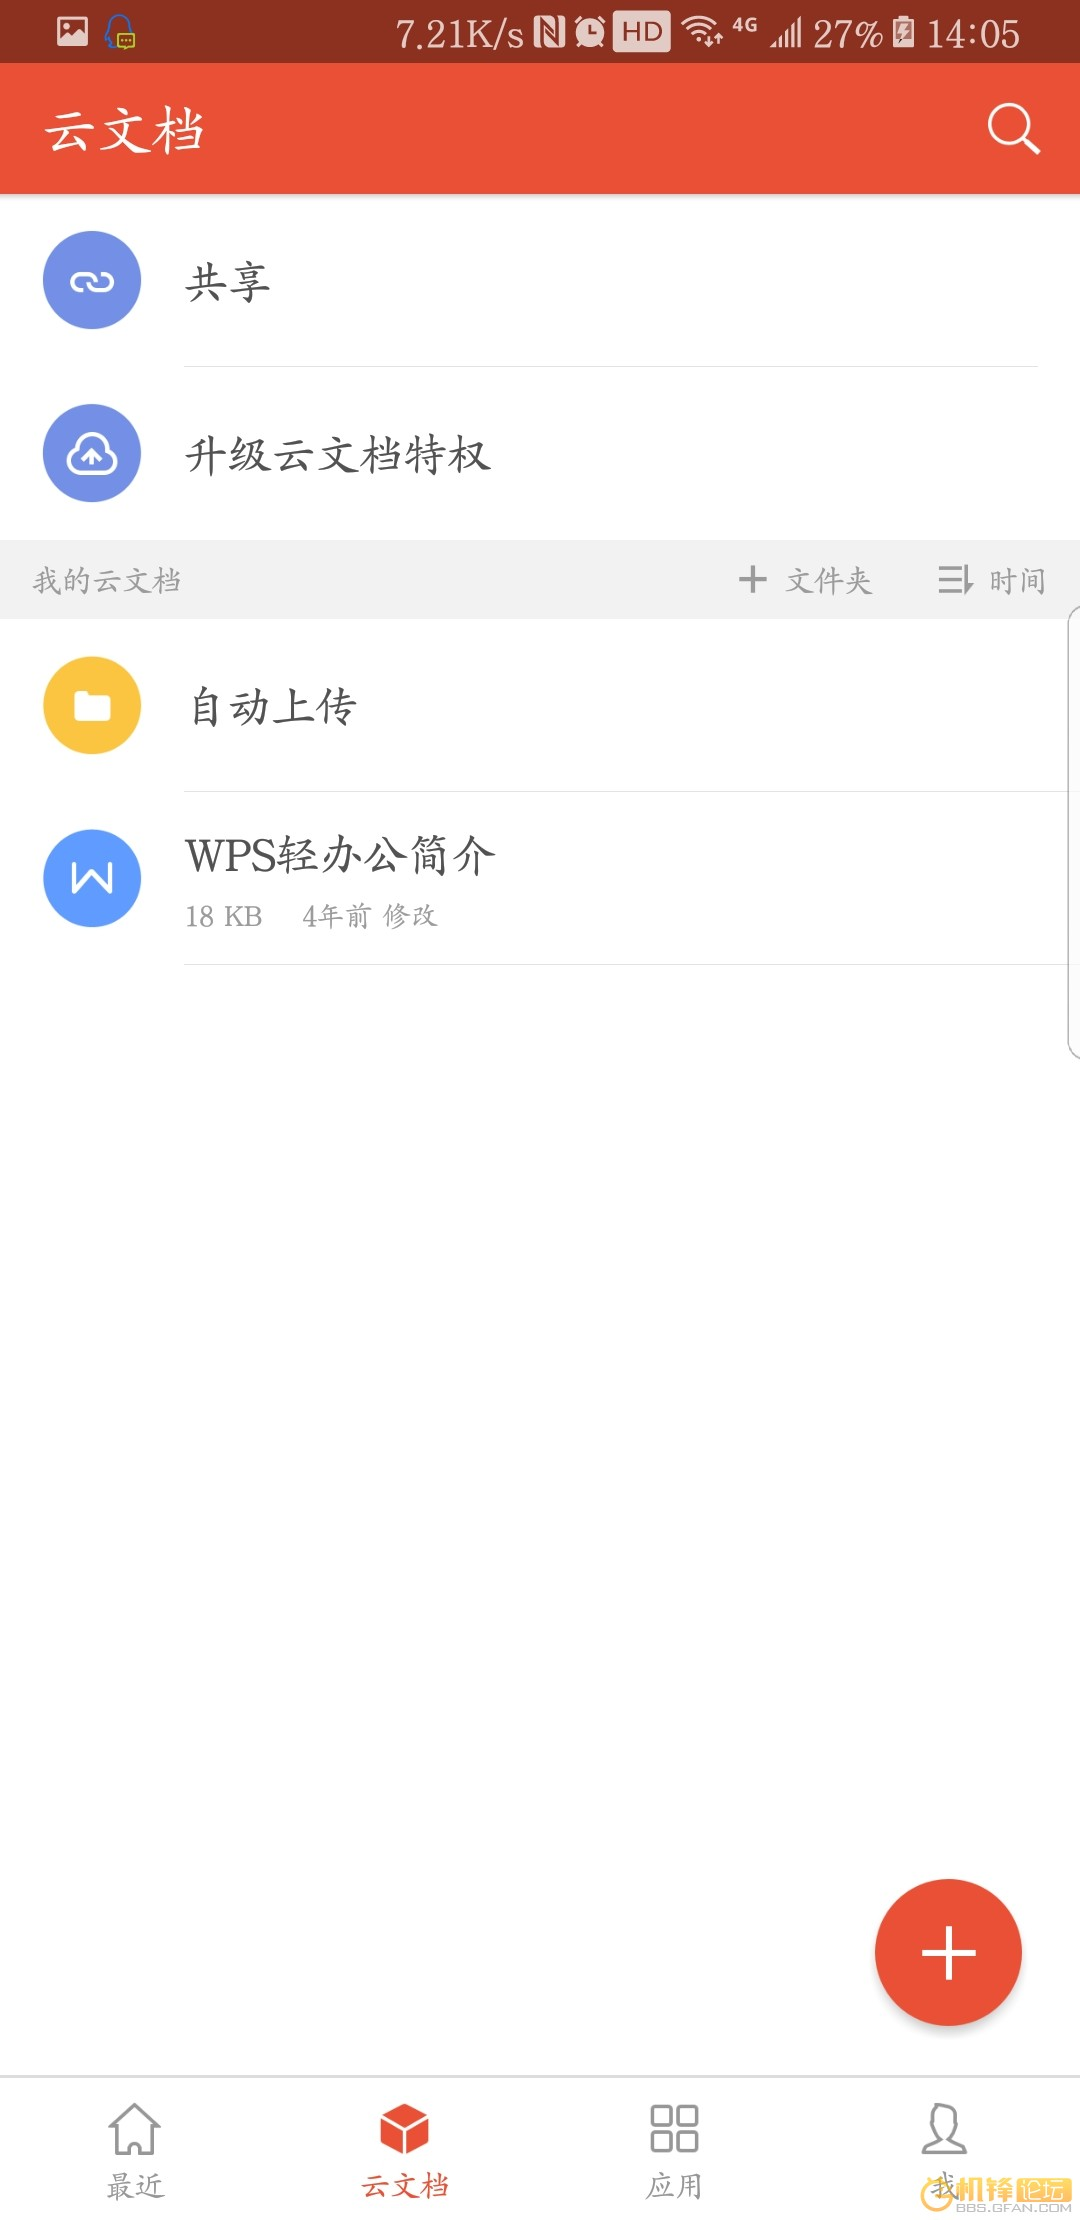 Screenshot_20180112-140538.jpg